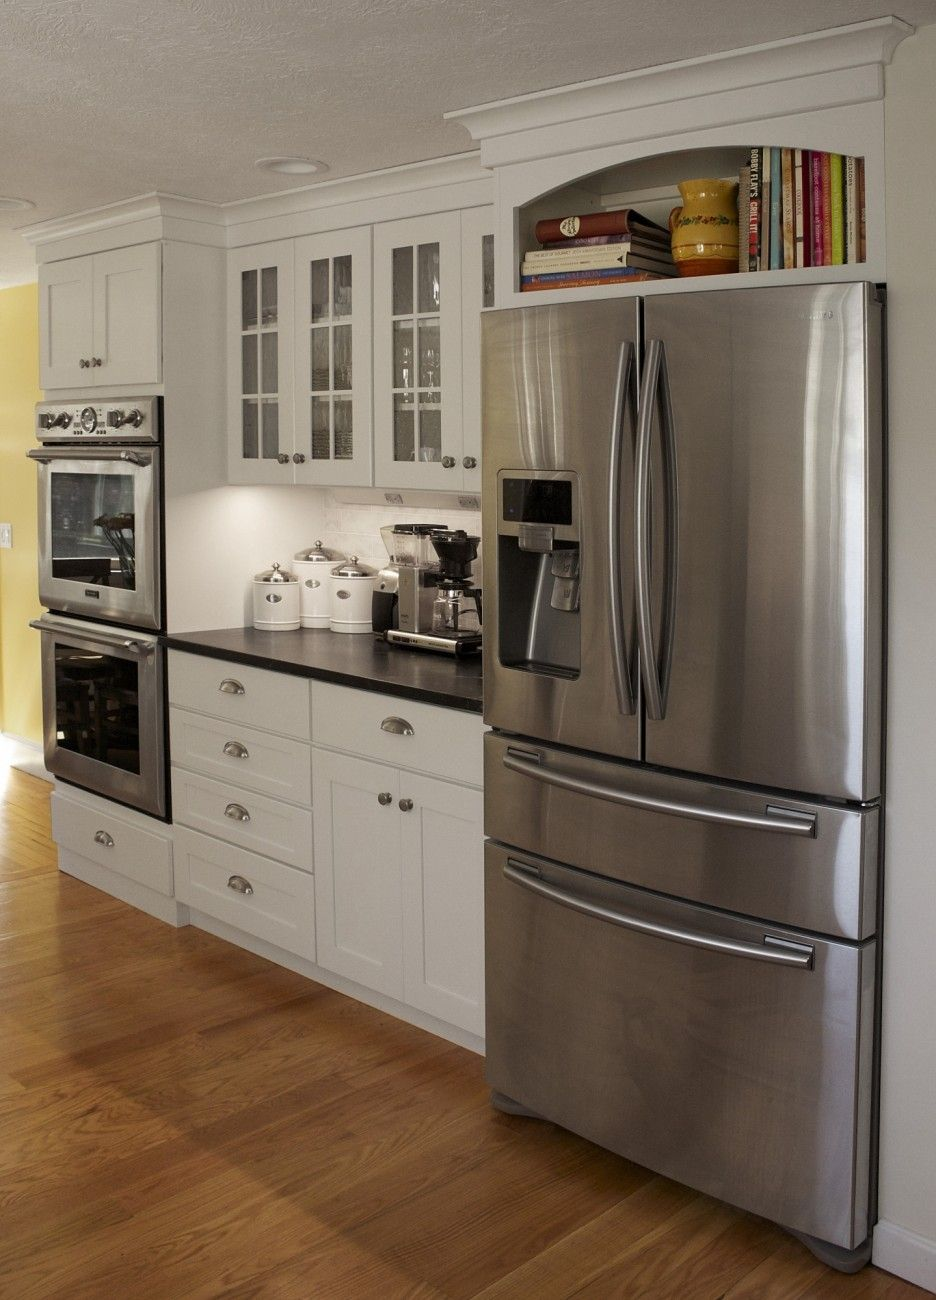 Galley kitchen remodel for small space fridge gallery ideas also rh pinterest